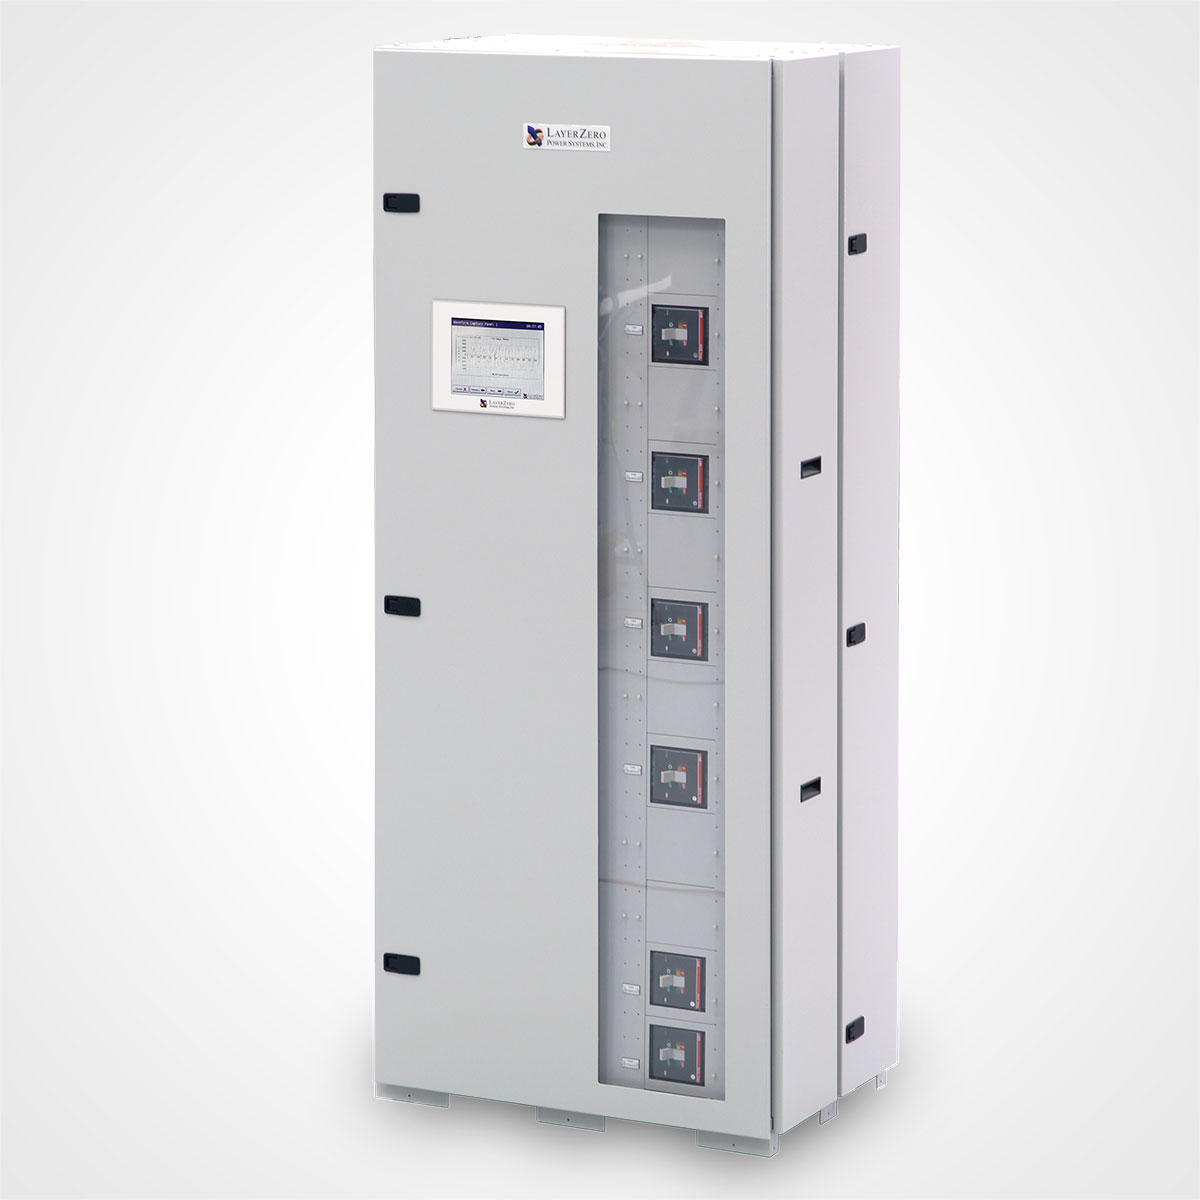 The LayerZero Series 70: eRDP-FS Remote Distribution Panel Front Angle.